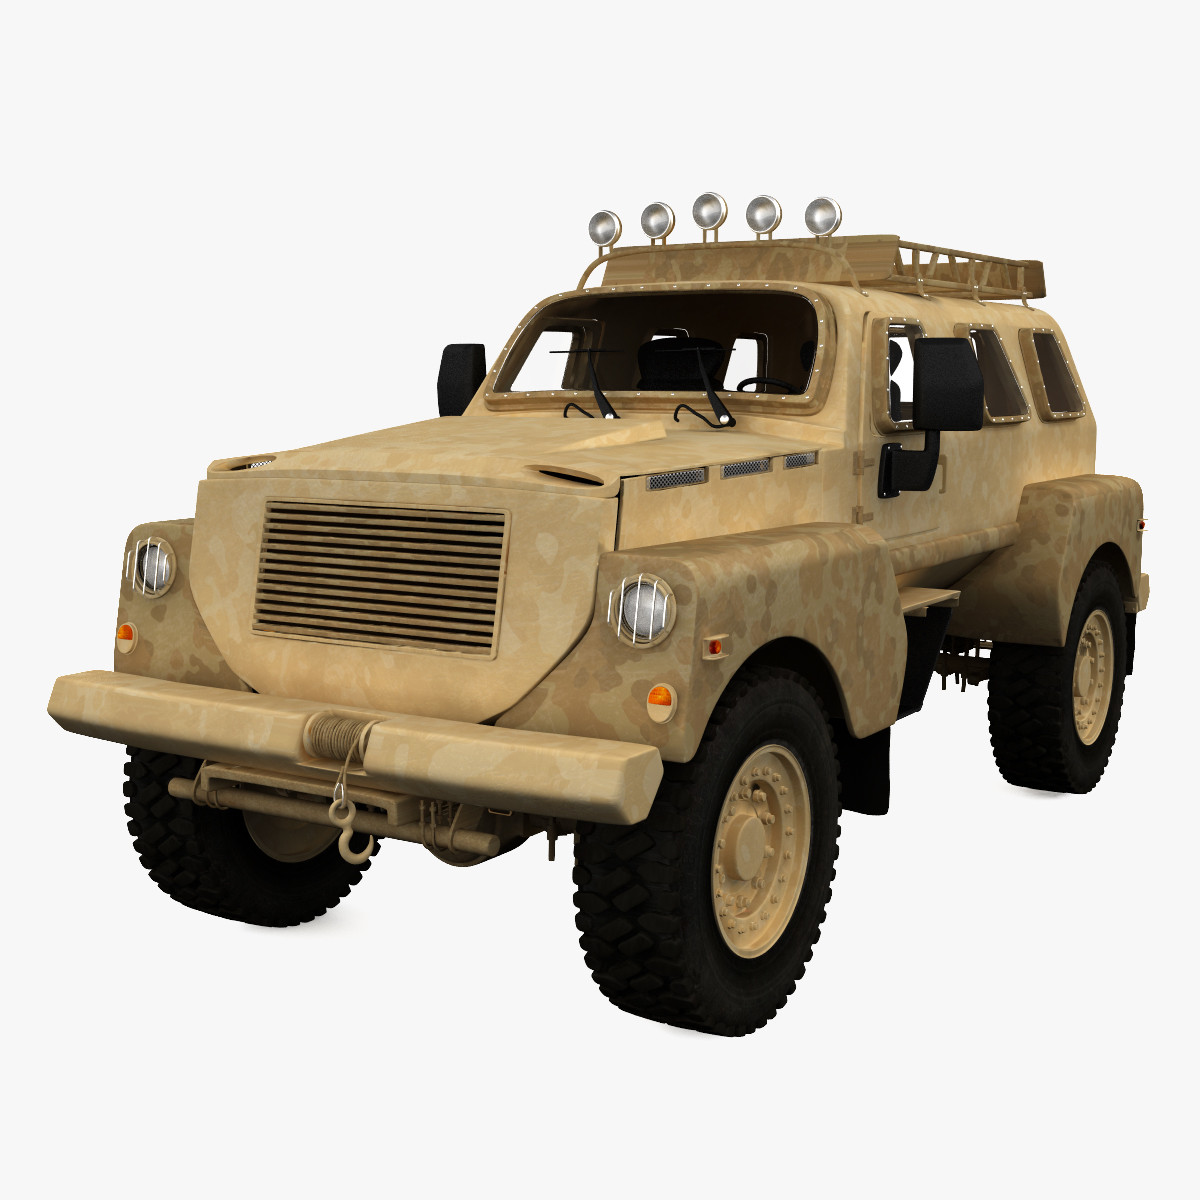 3d cheetah mmpv armoured vehicle